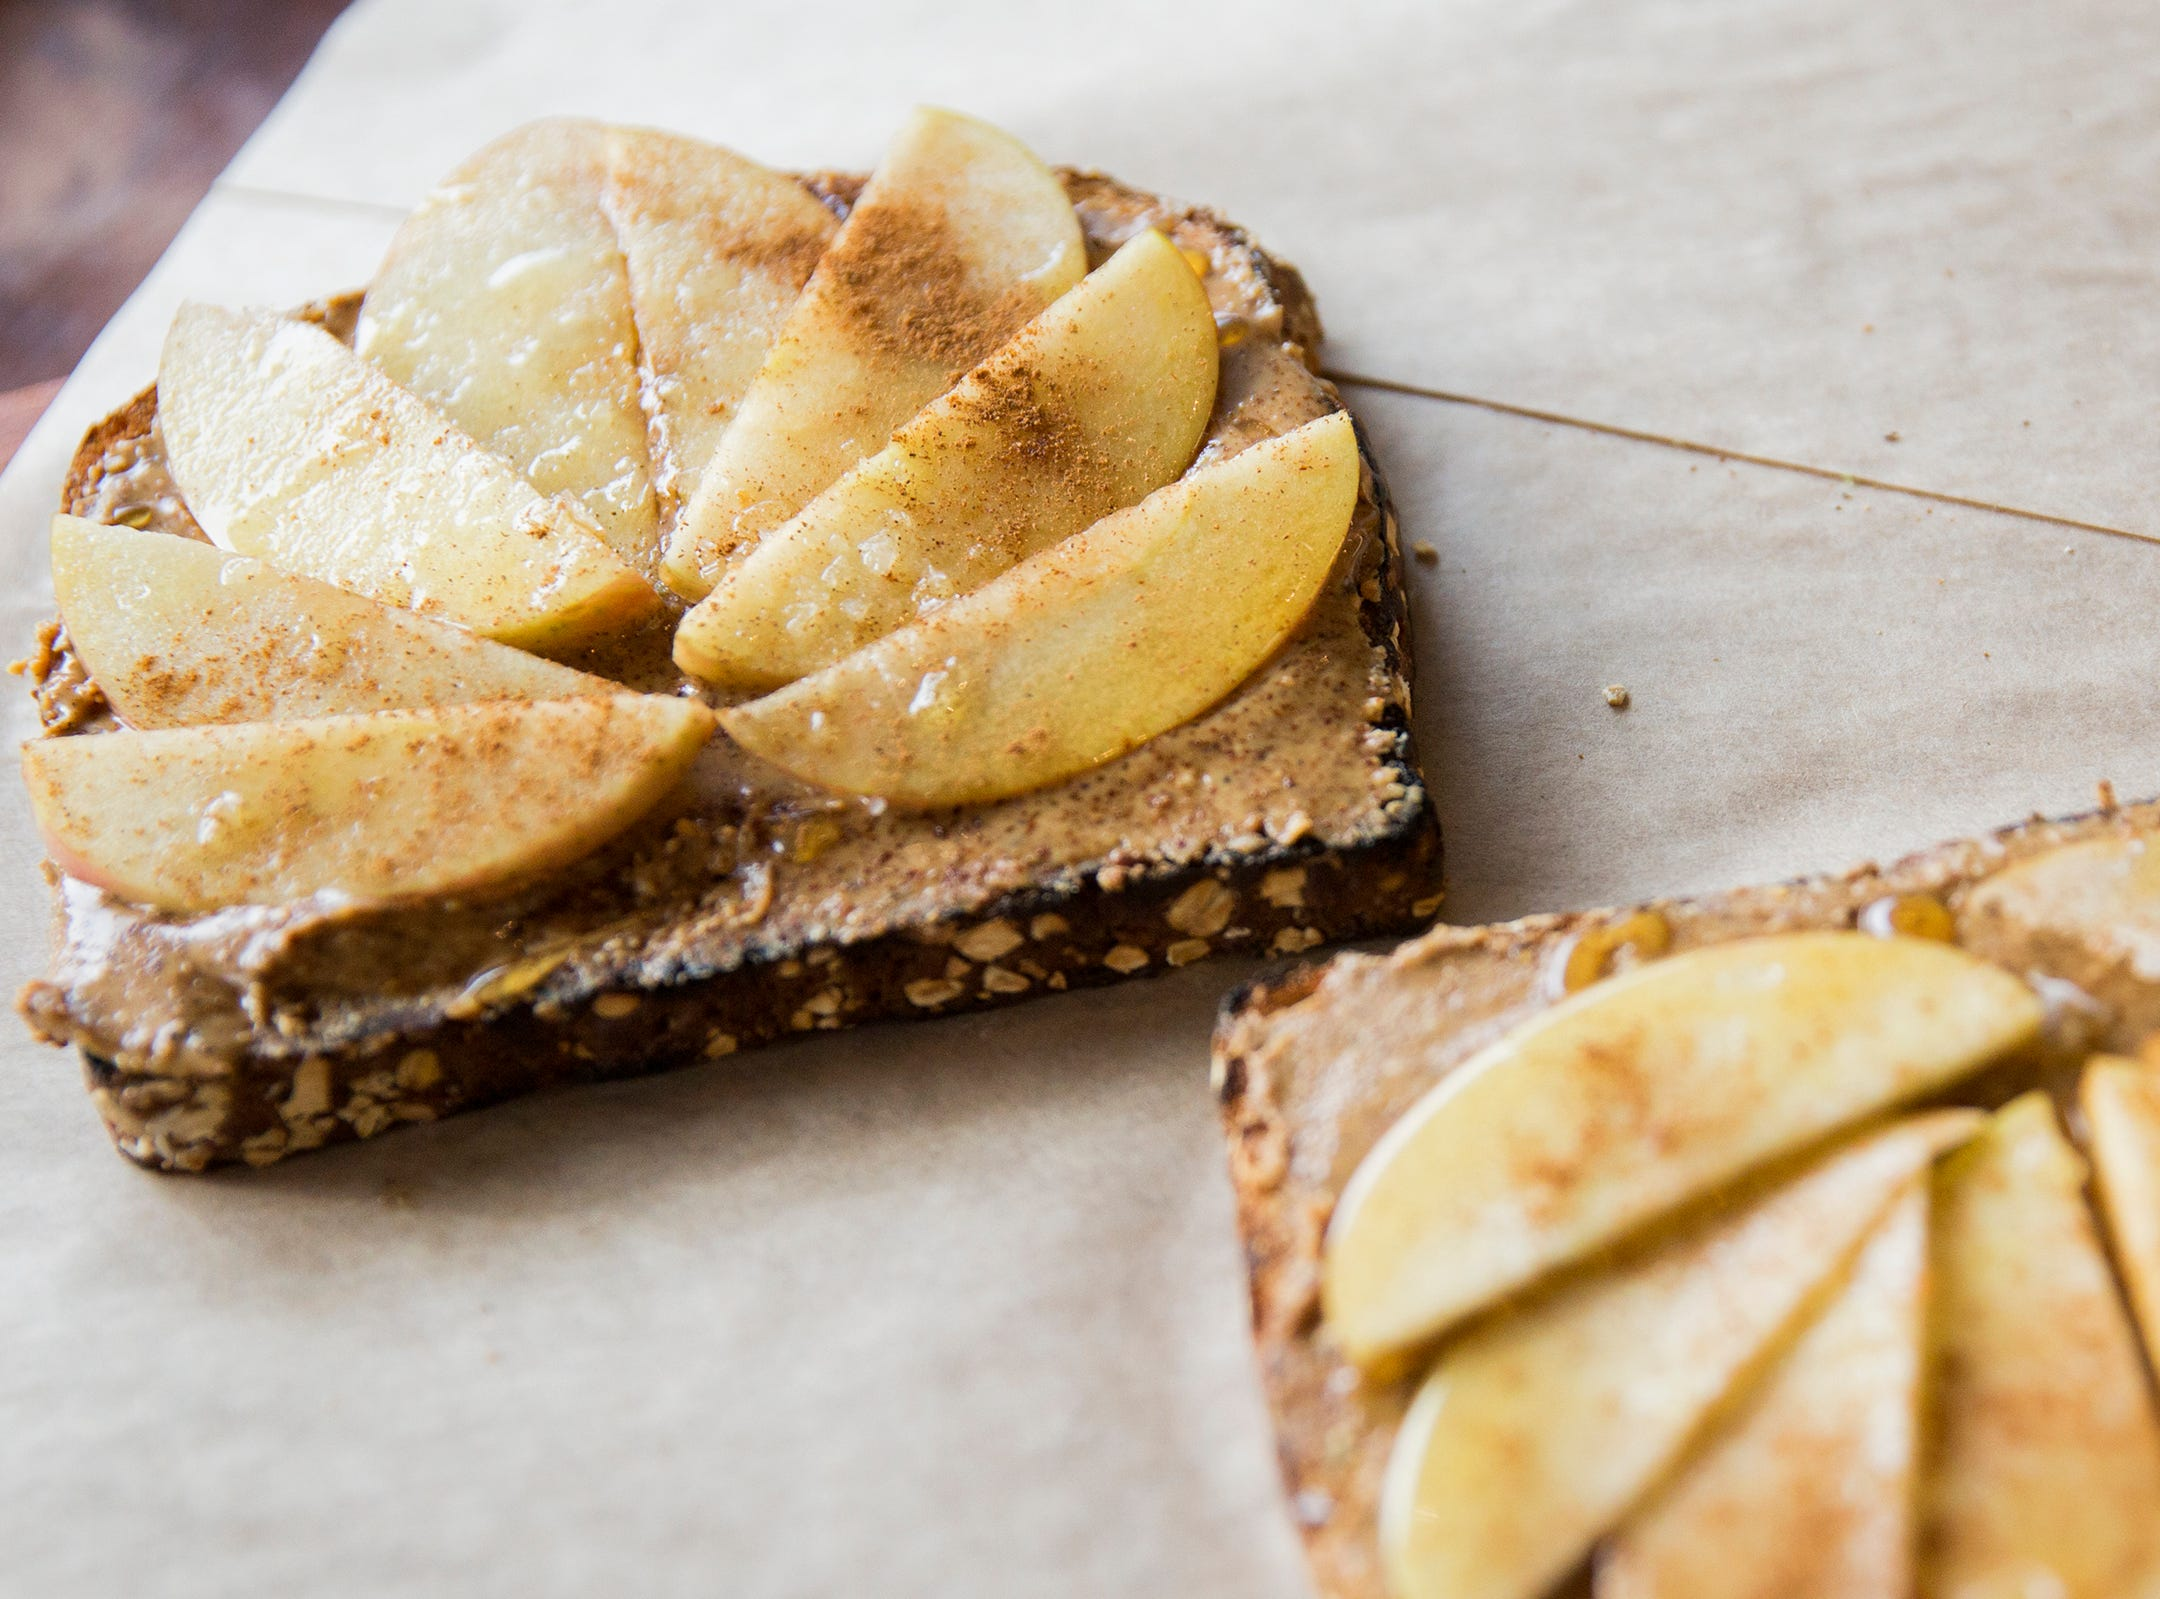 Toast with almond butter, apple, honey and cinnamon at Isaac's Downtown in Salem on Thursday, Jan. 3, 2019. The menu item is called Wenatchee.